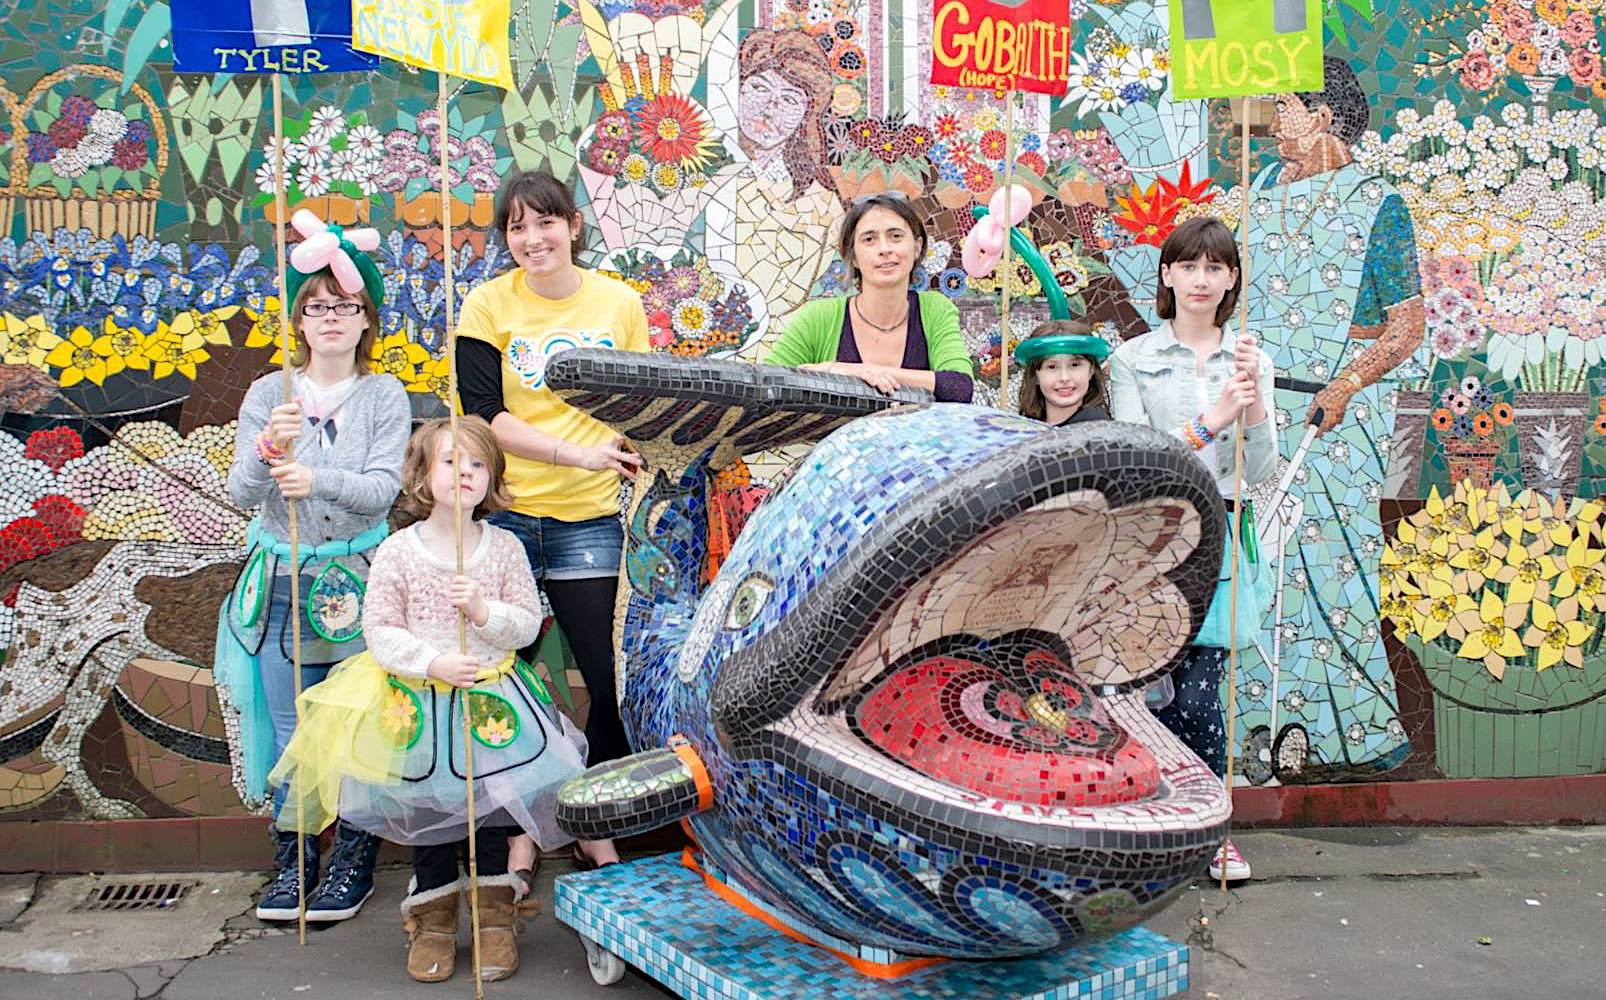 community mosaic whale and mosaic dresses